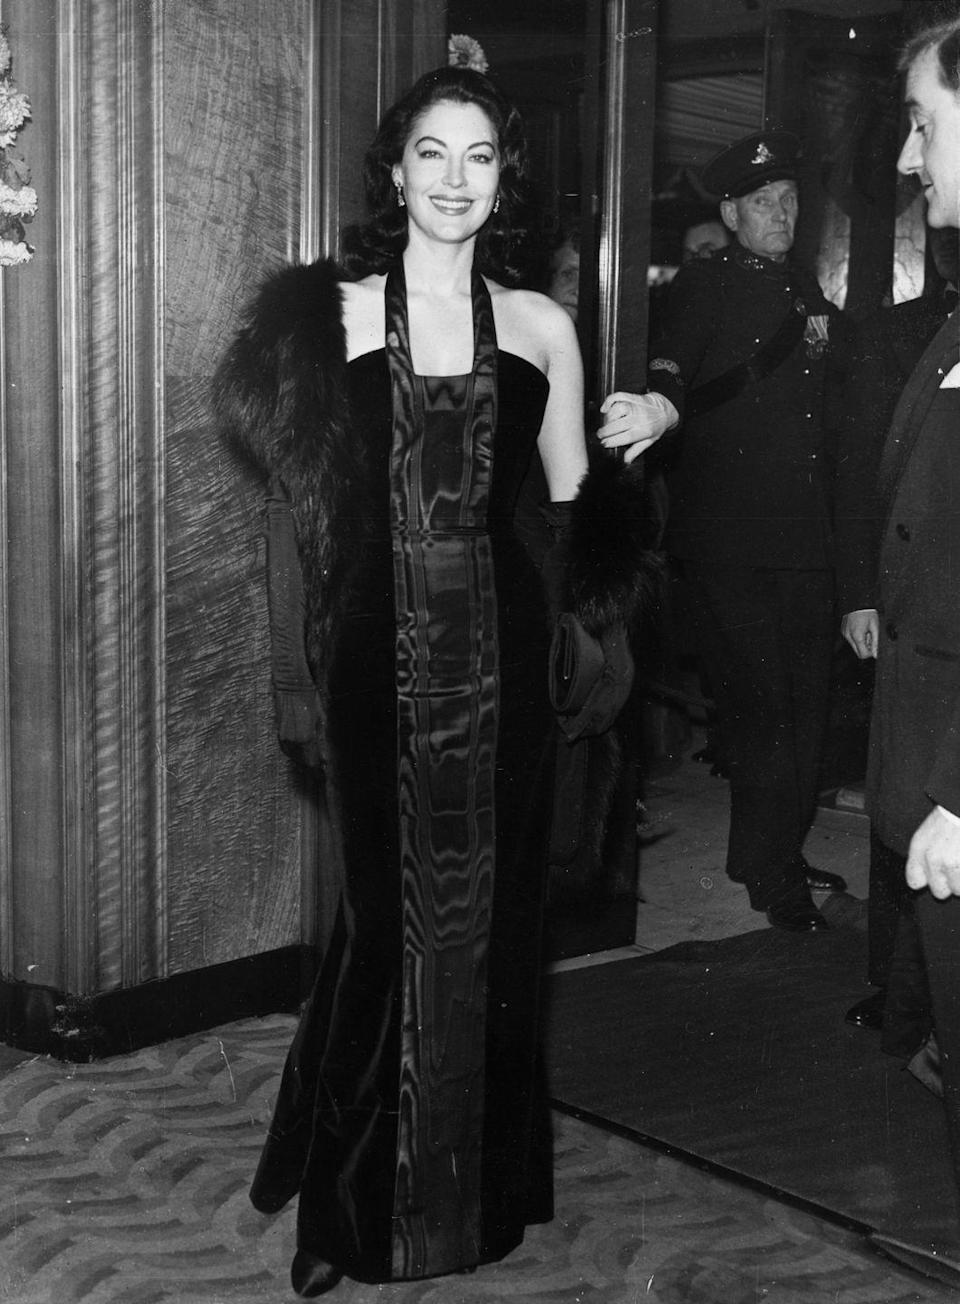 <p>Gardner stuns in a black sheath evening dress boasting a moiré-like pattern and a fur wrap while attending a Royal Film Premiere. </p>